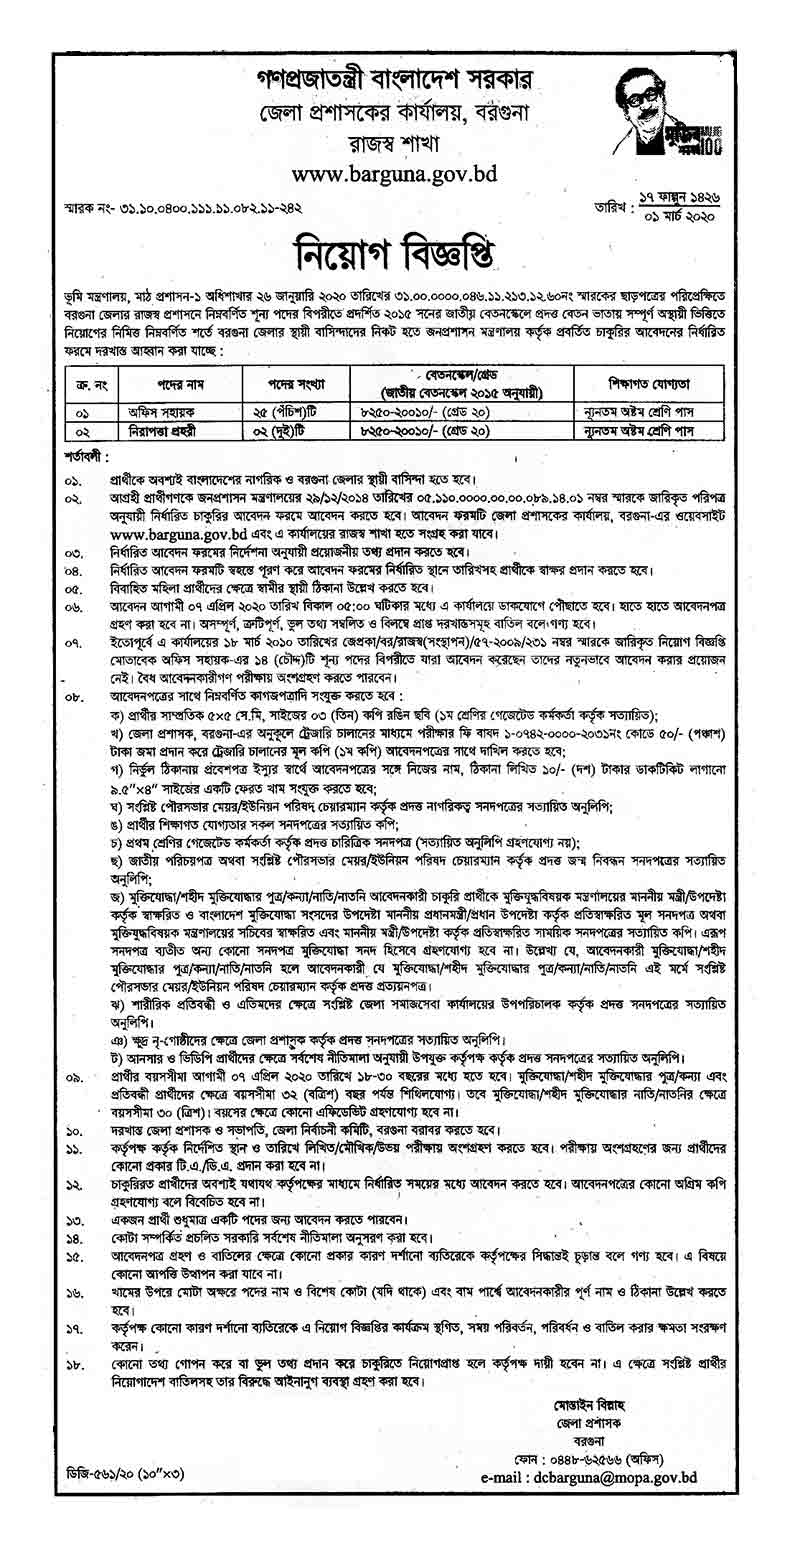 Dc office job circular 2020